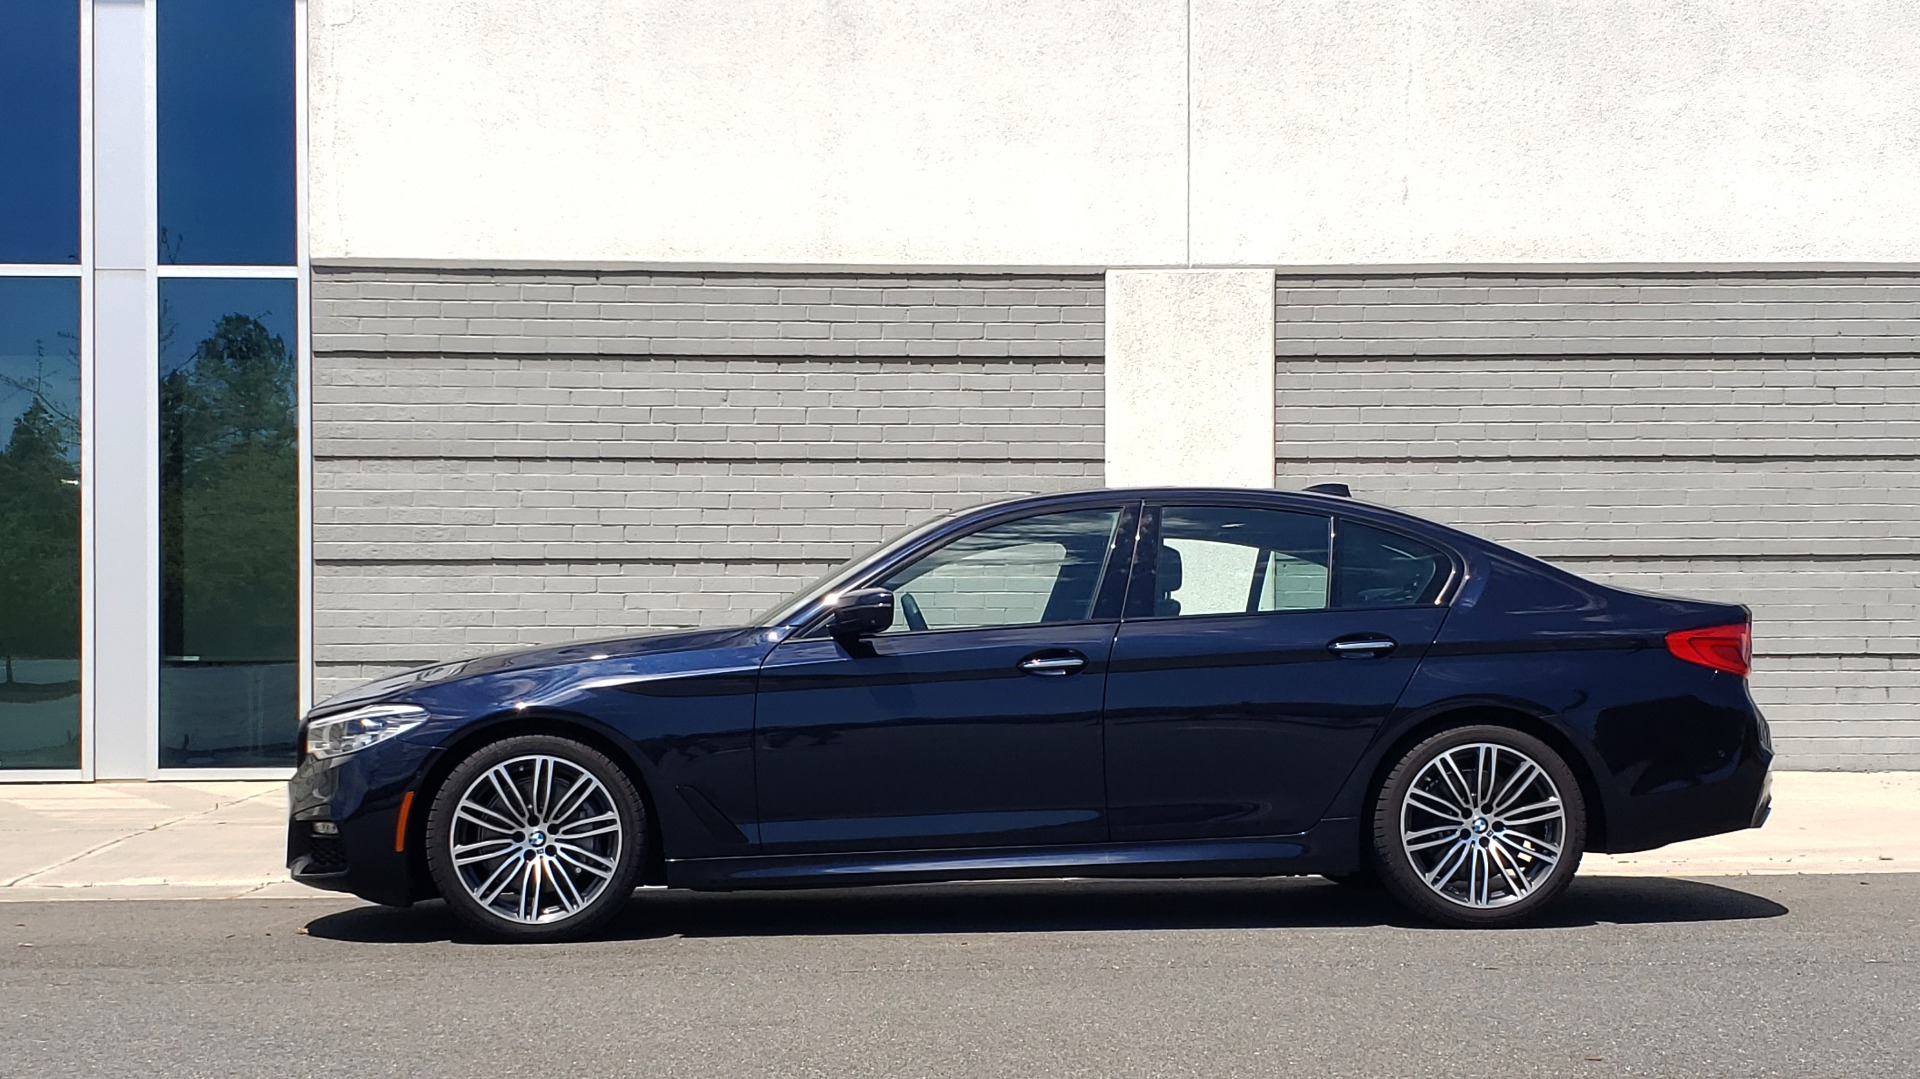 Used 2017 BMW 5 SERIES 540I XDRIVE M-SPORT / PREMIUM / DRVR ASST PLUS / CLD WTHR / LUXURY for sale Sold at Formula Imports in Charlotte NC 28227 7